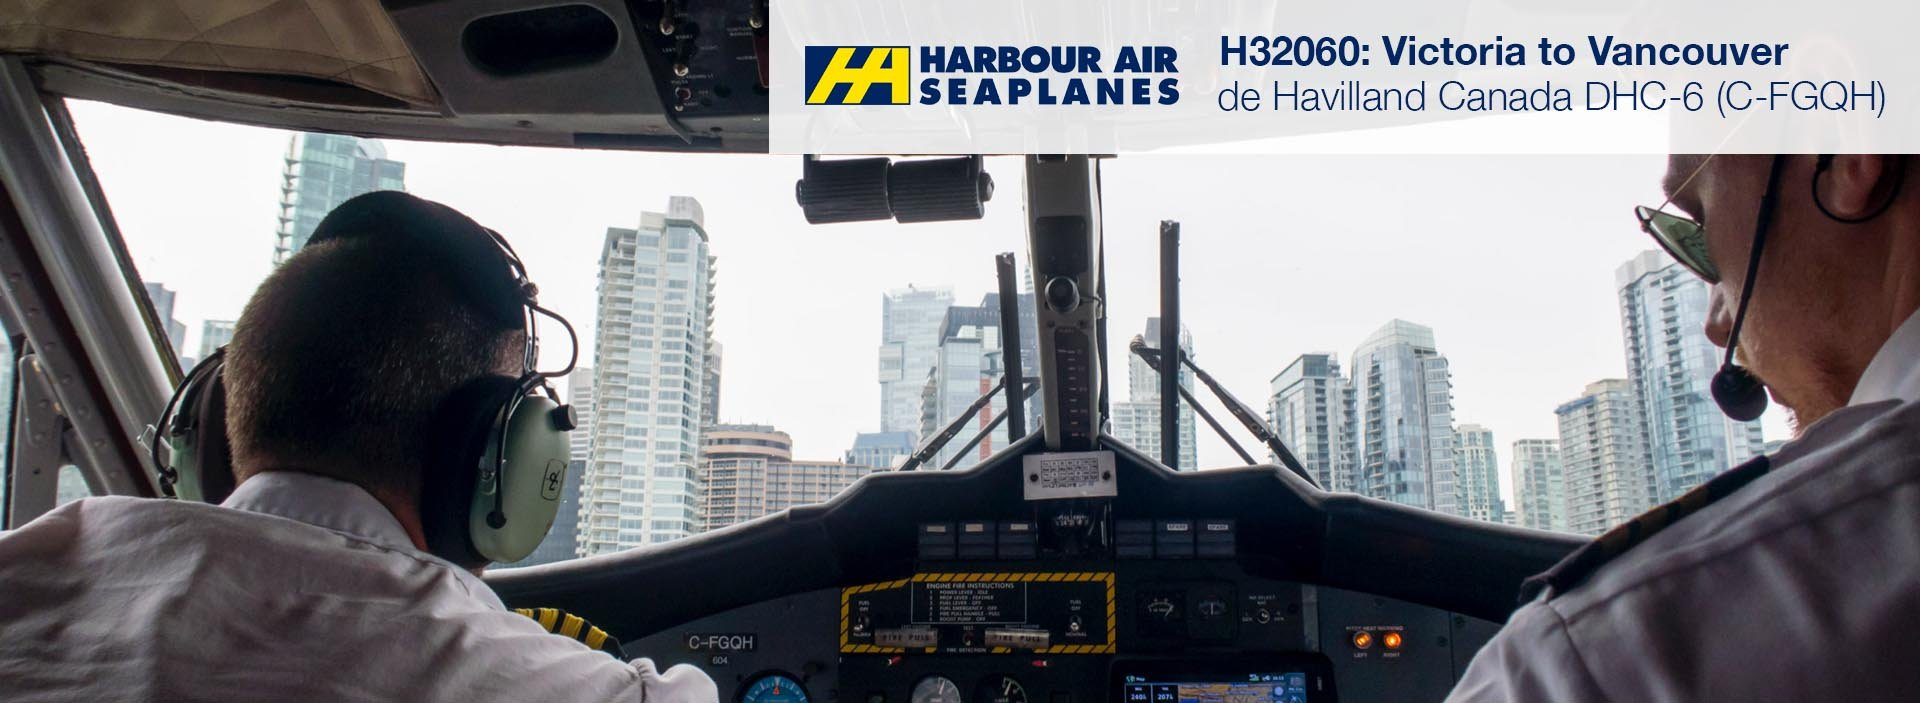 Flight Review: Harbour Air DHC-6 Twin Otter from Victoria Harbour to Vancouver Harbour